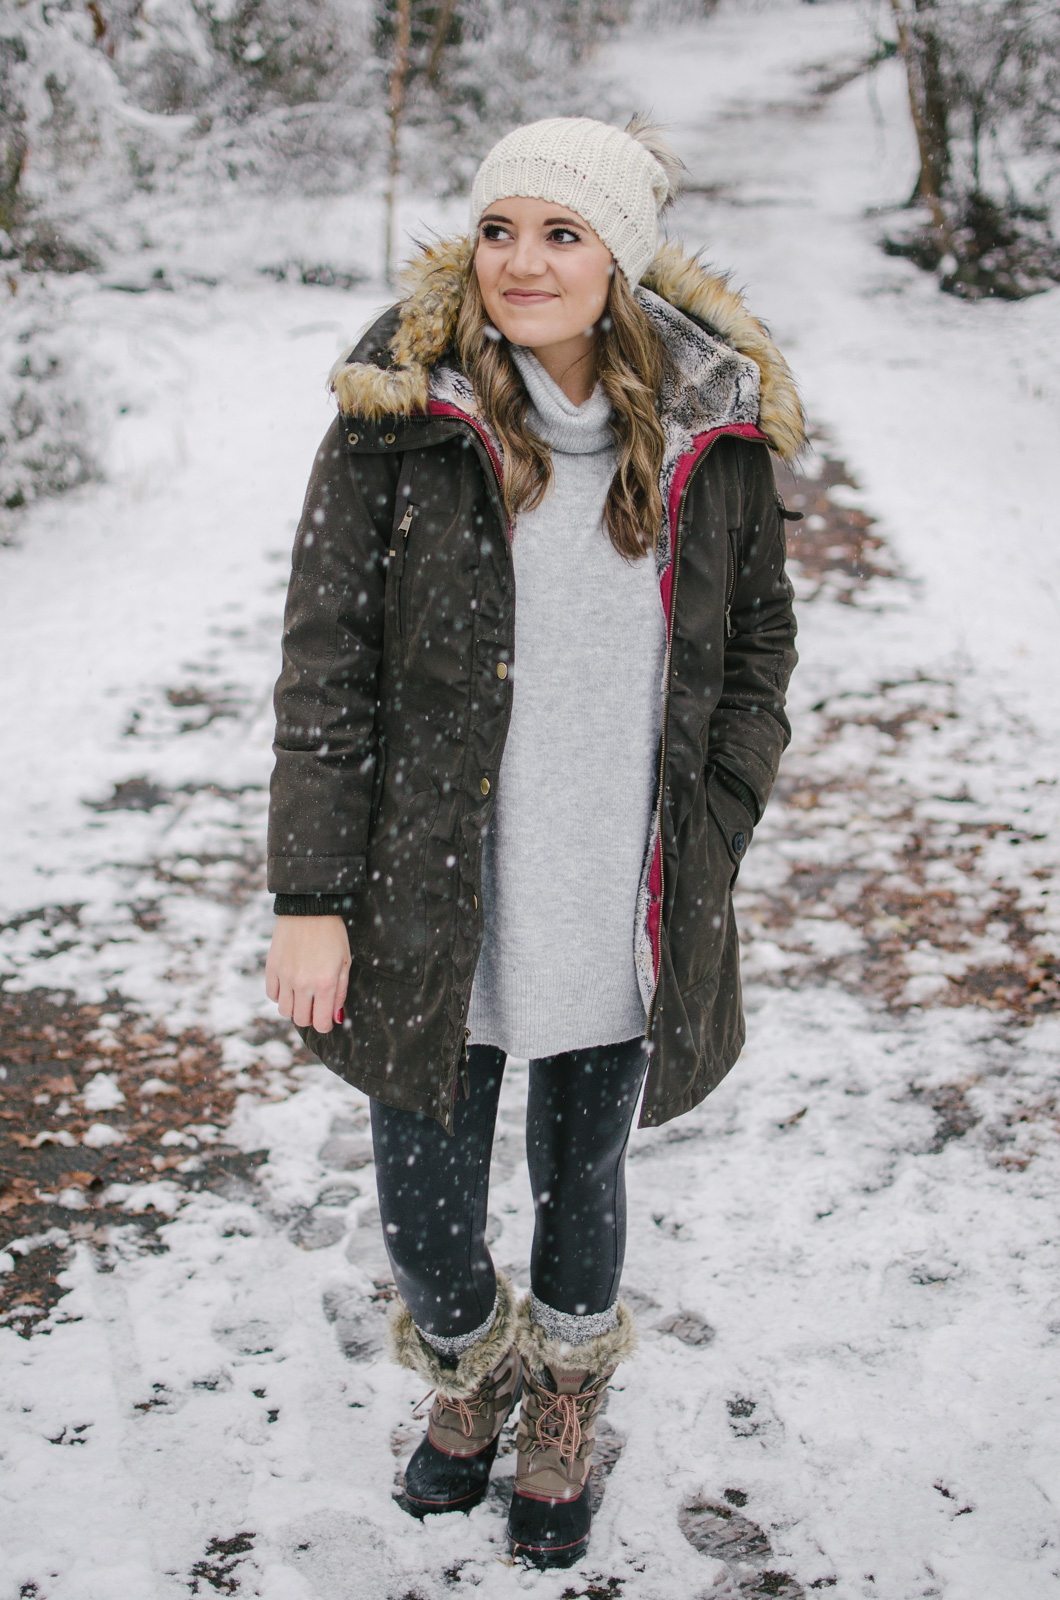 snow outfit - warm snow day outfit | Get outfit details or see more Winter outfits at bylaurenm.com!